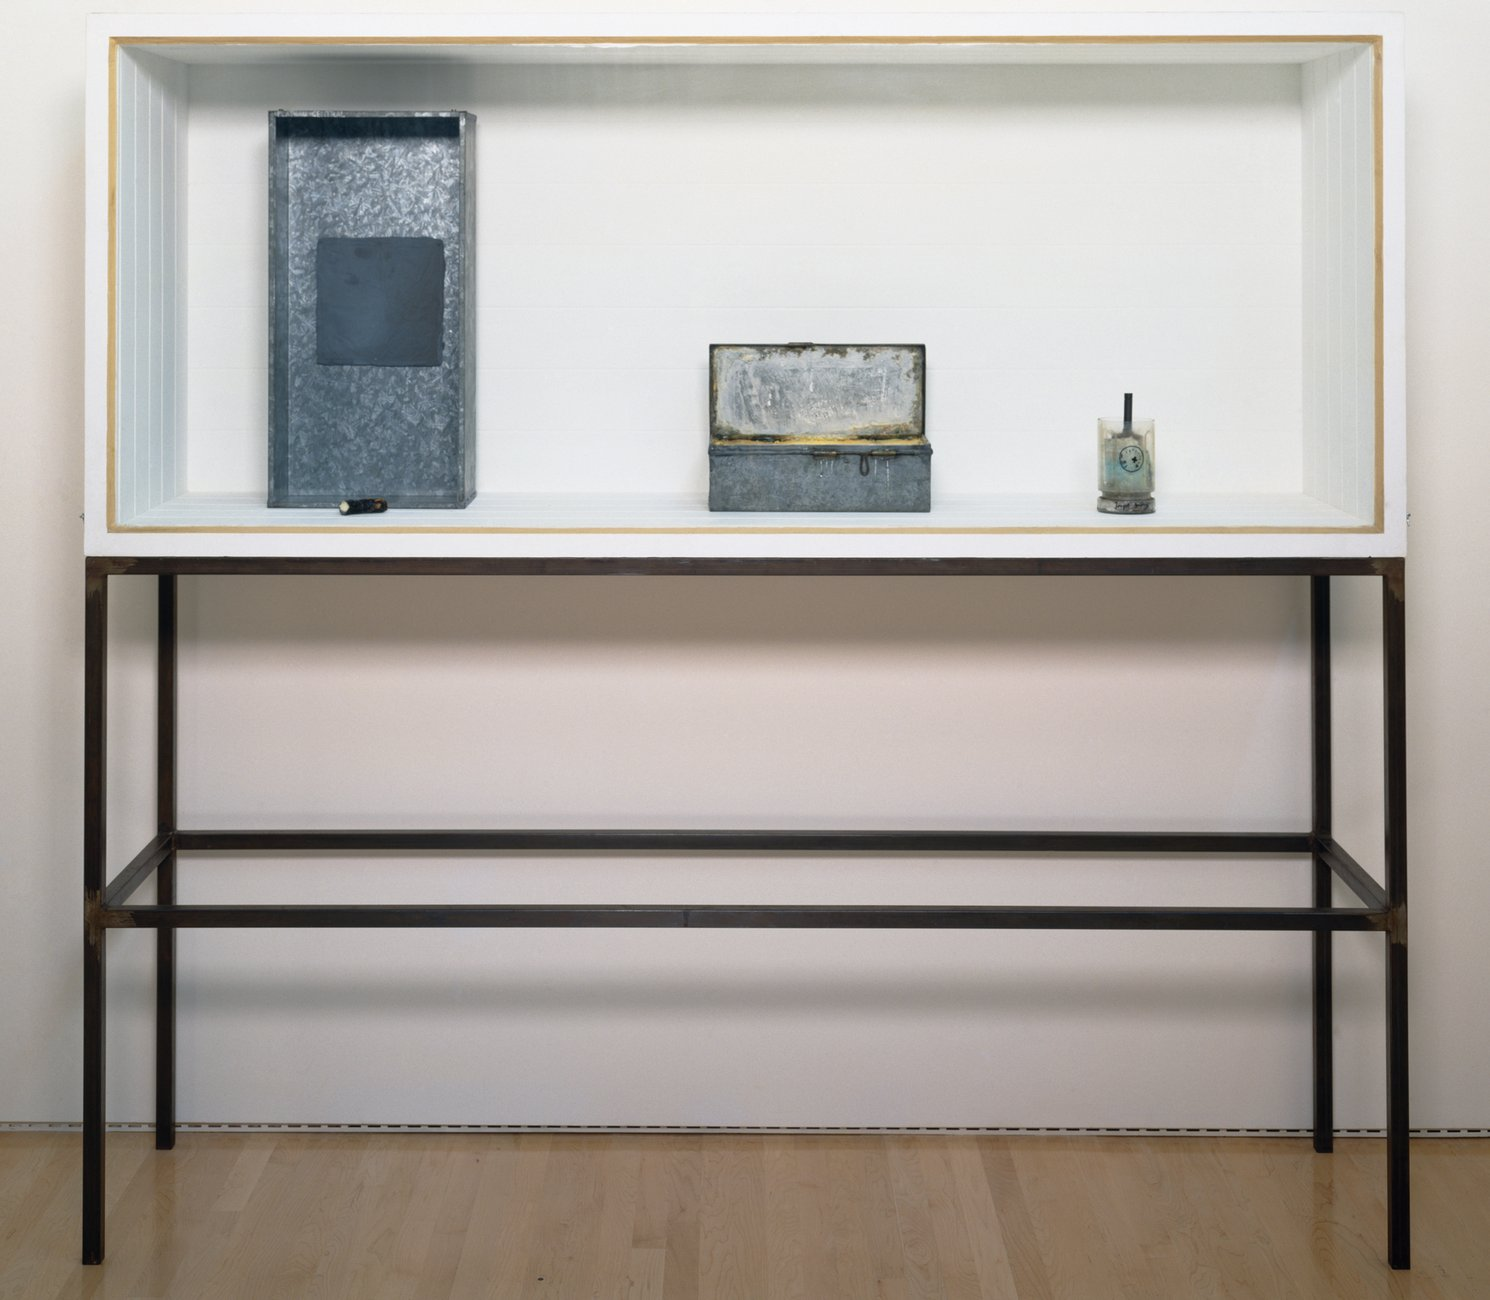 A white-walled vitrine atop thin steel legs, containing several metal and glass objects